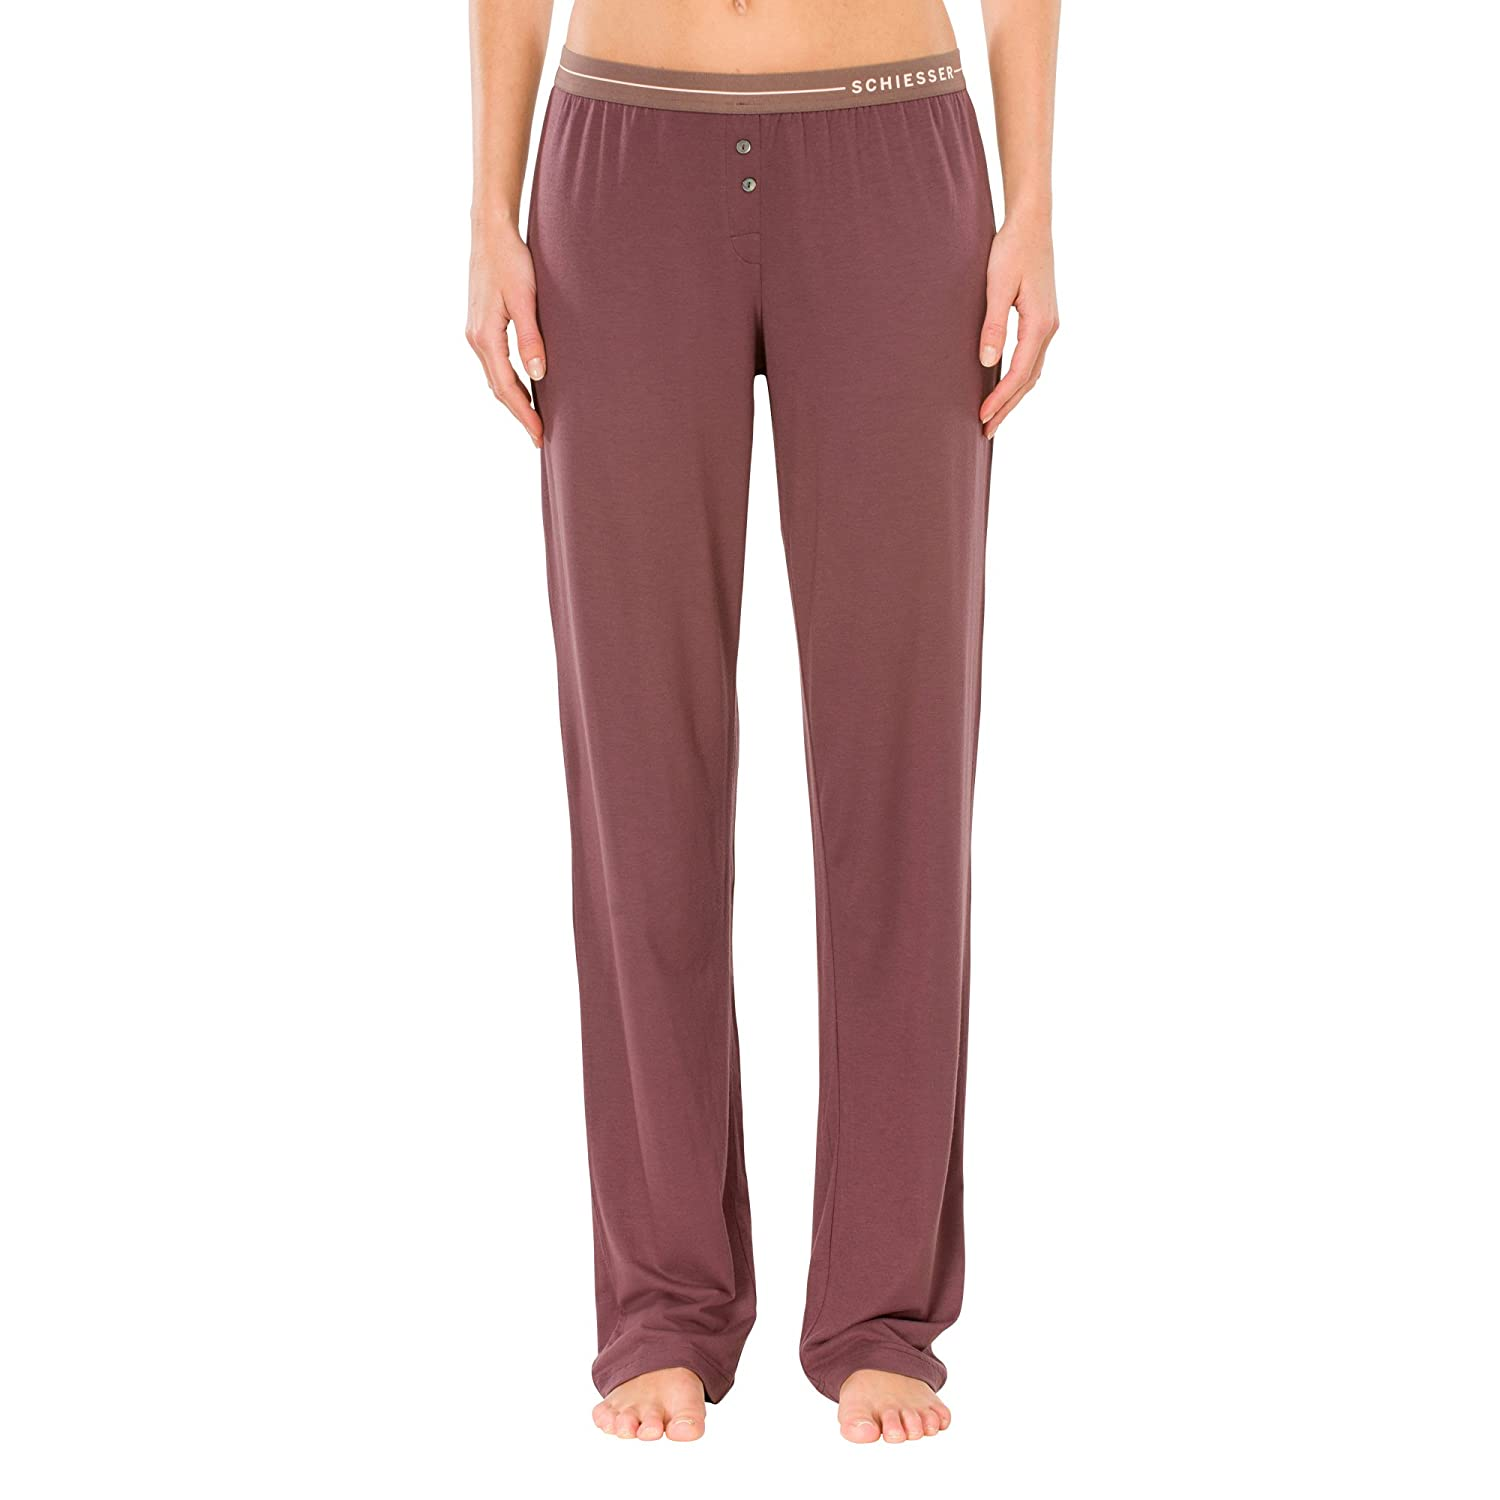 Schiesser Women's Pyjama Bottoms